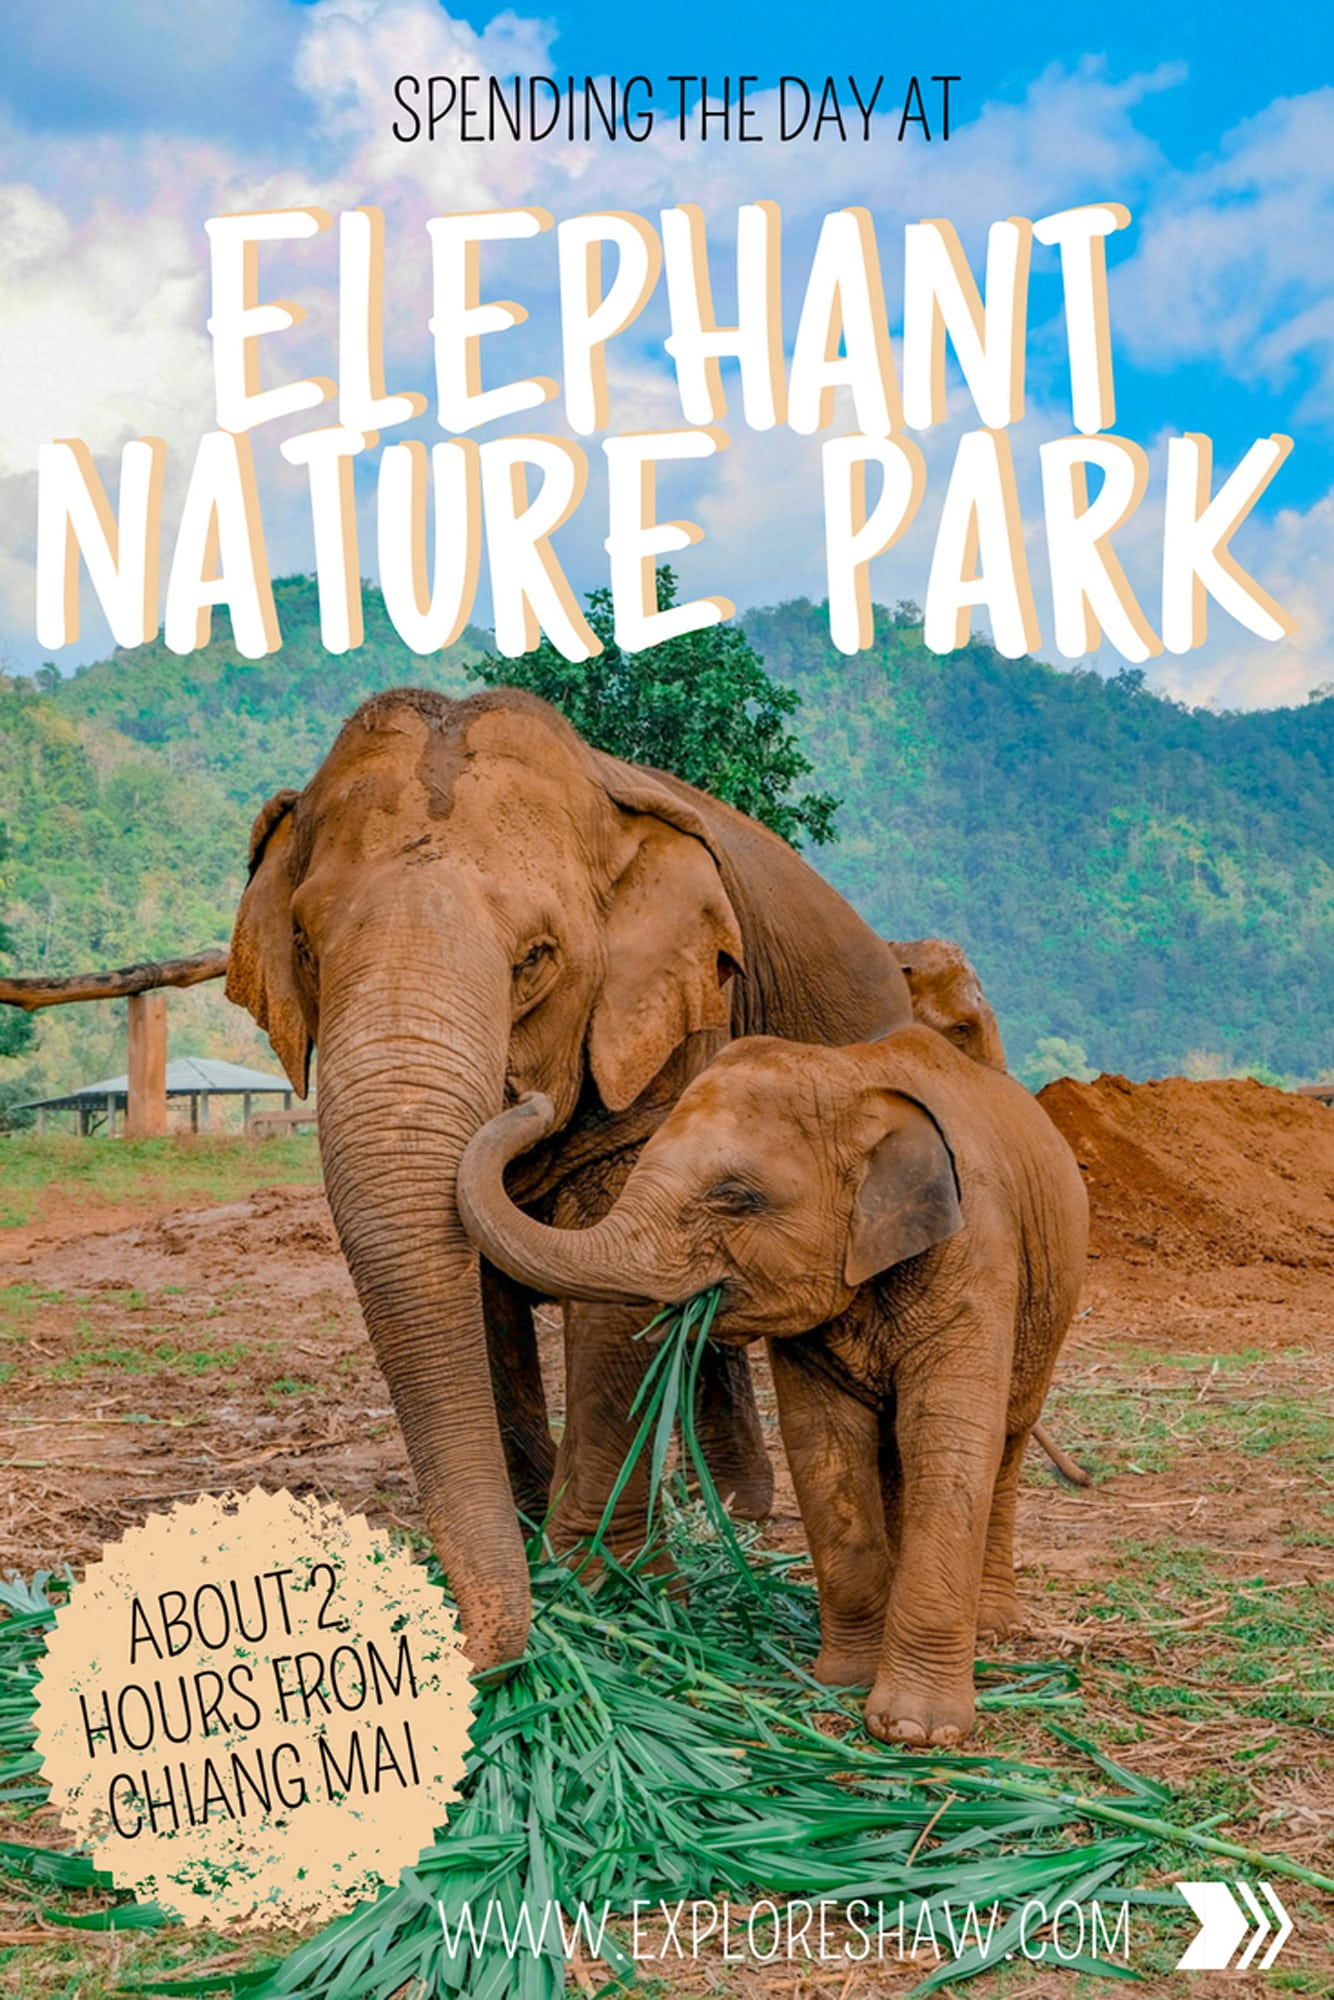 SPENDING THE DAY AT ELEPHANT NATURE PARK CHIANG MAI